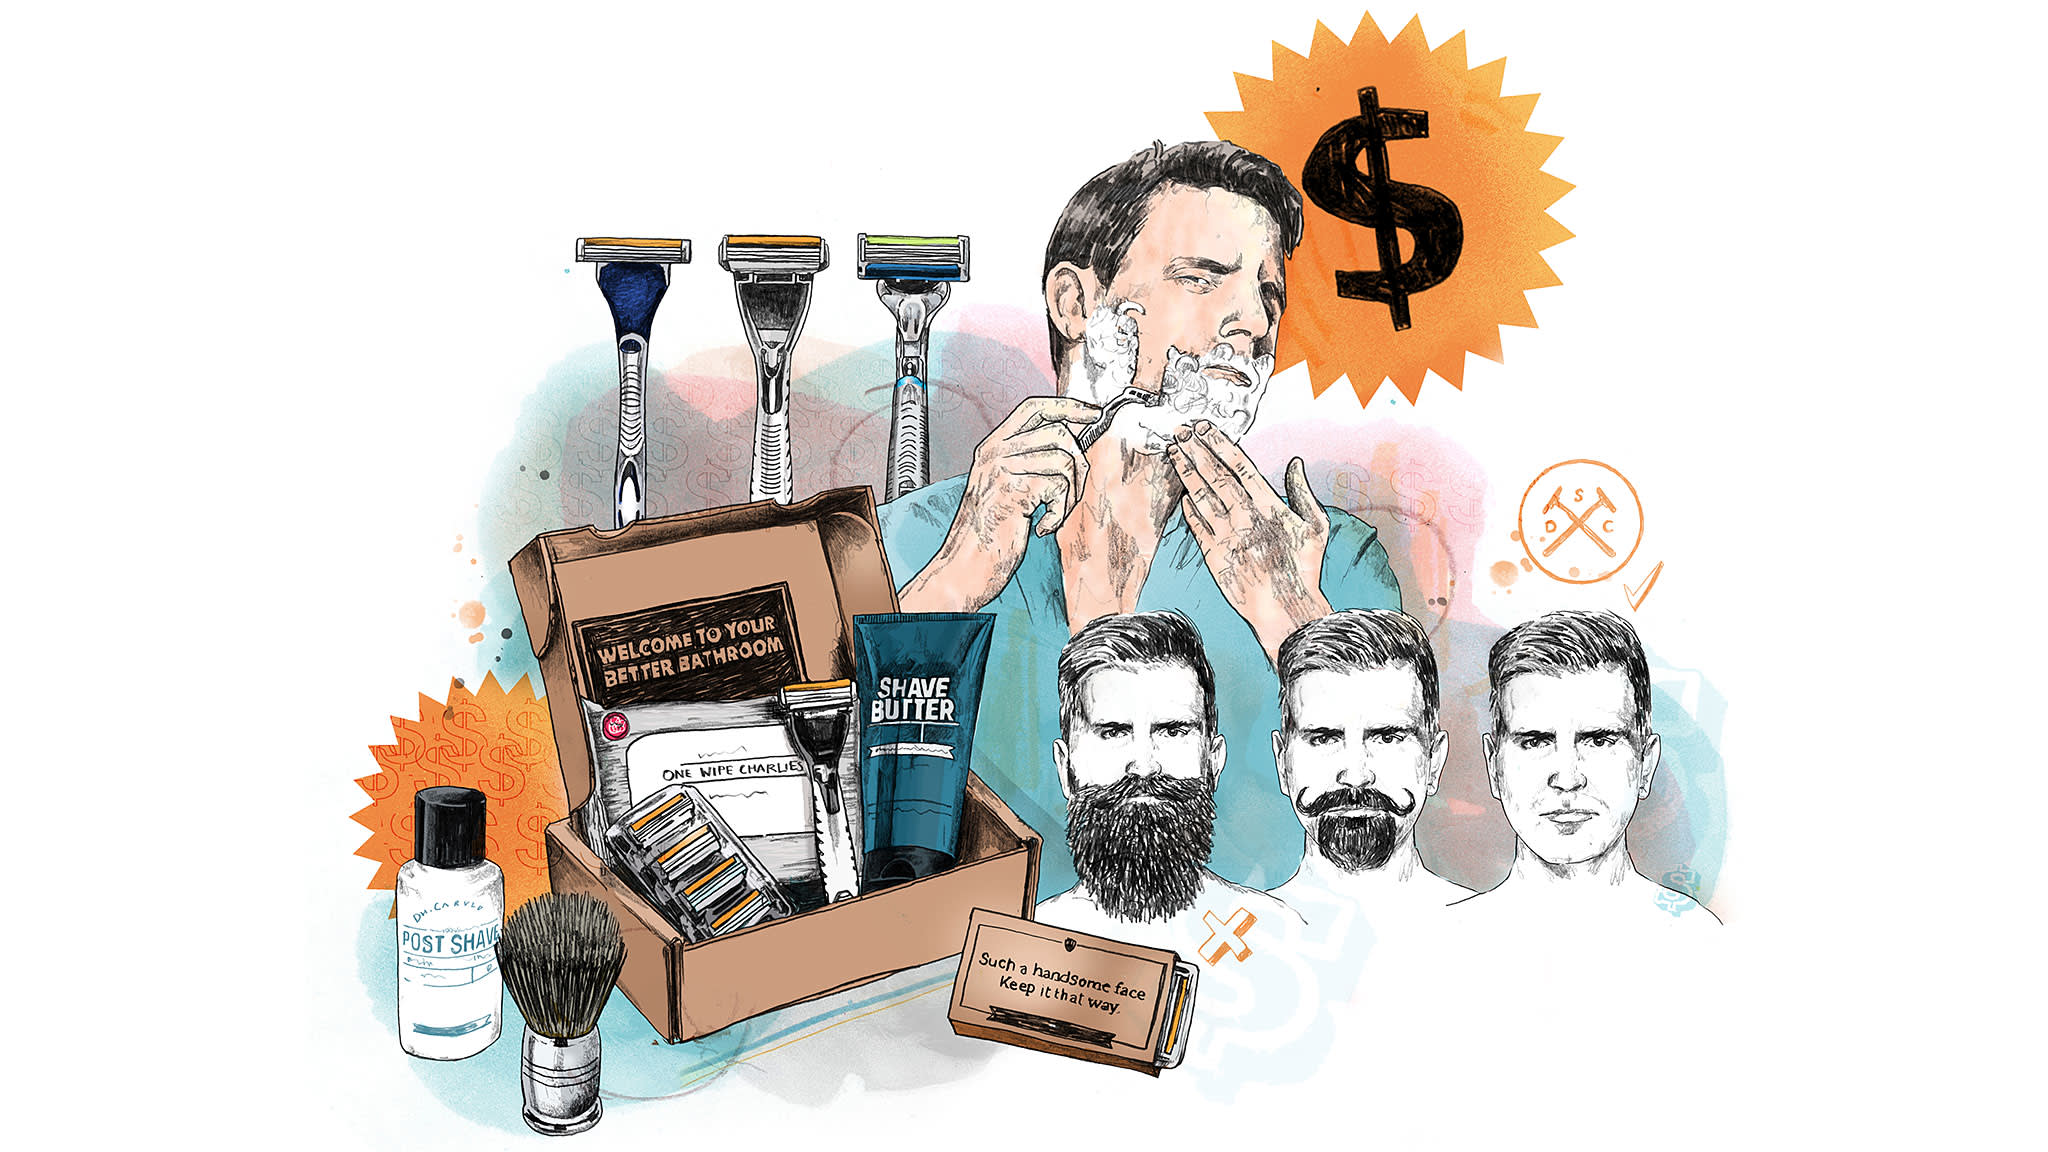 Dollar Shave Club wins market share and customers with back-to-basics approach | Financial Times